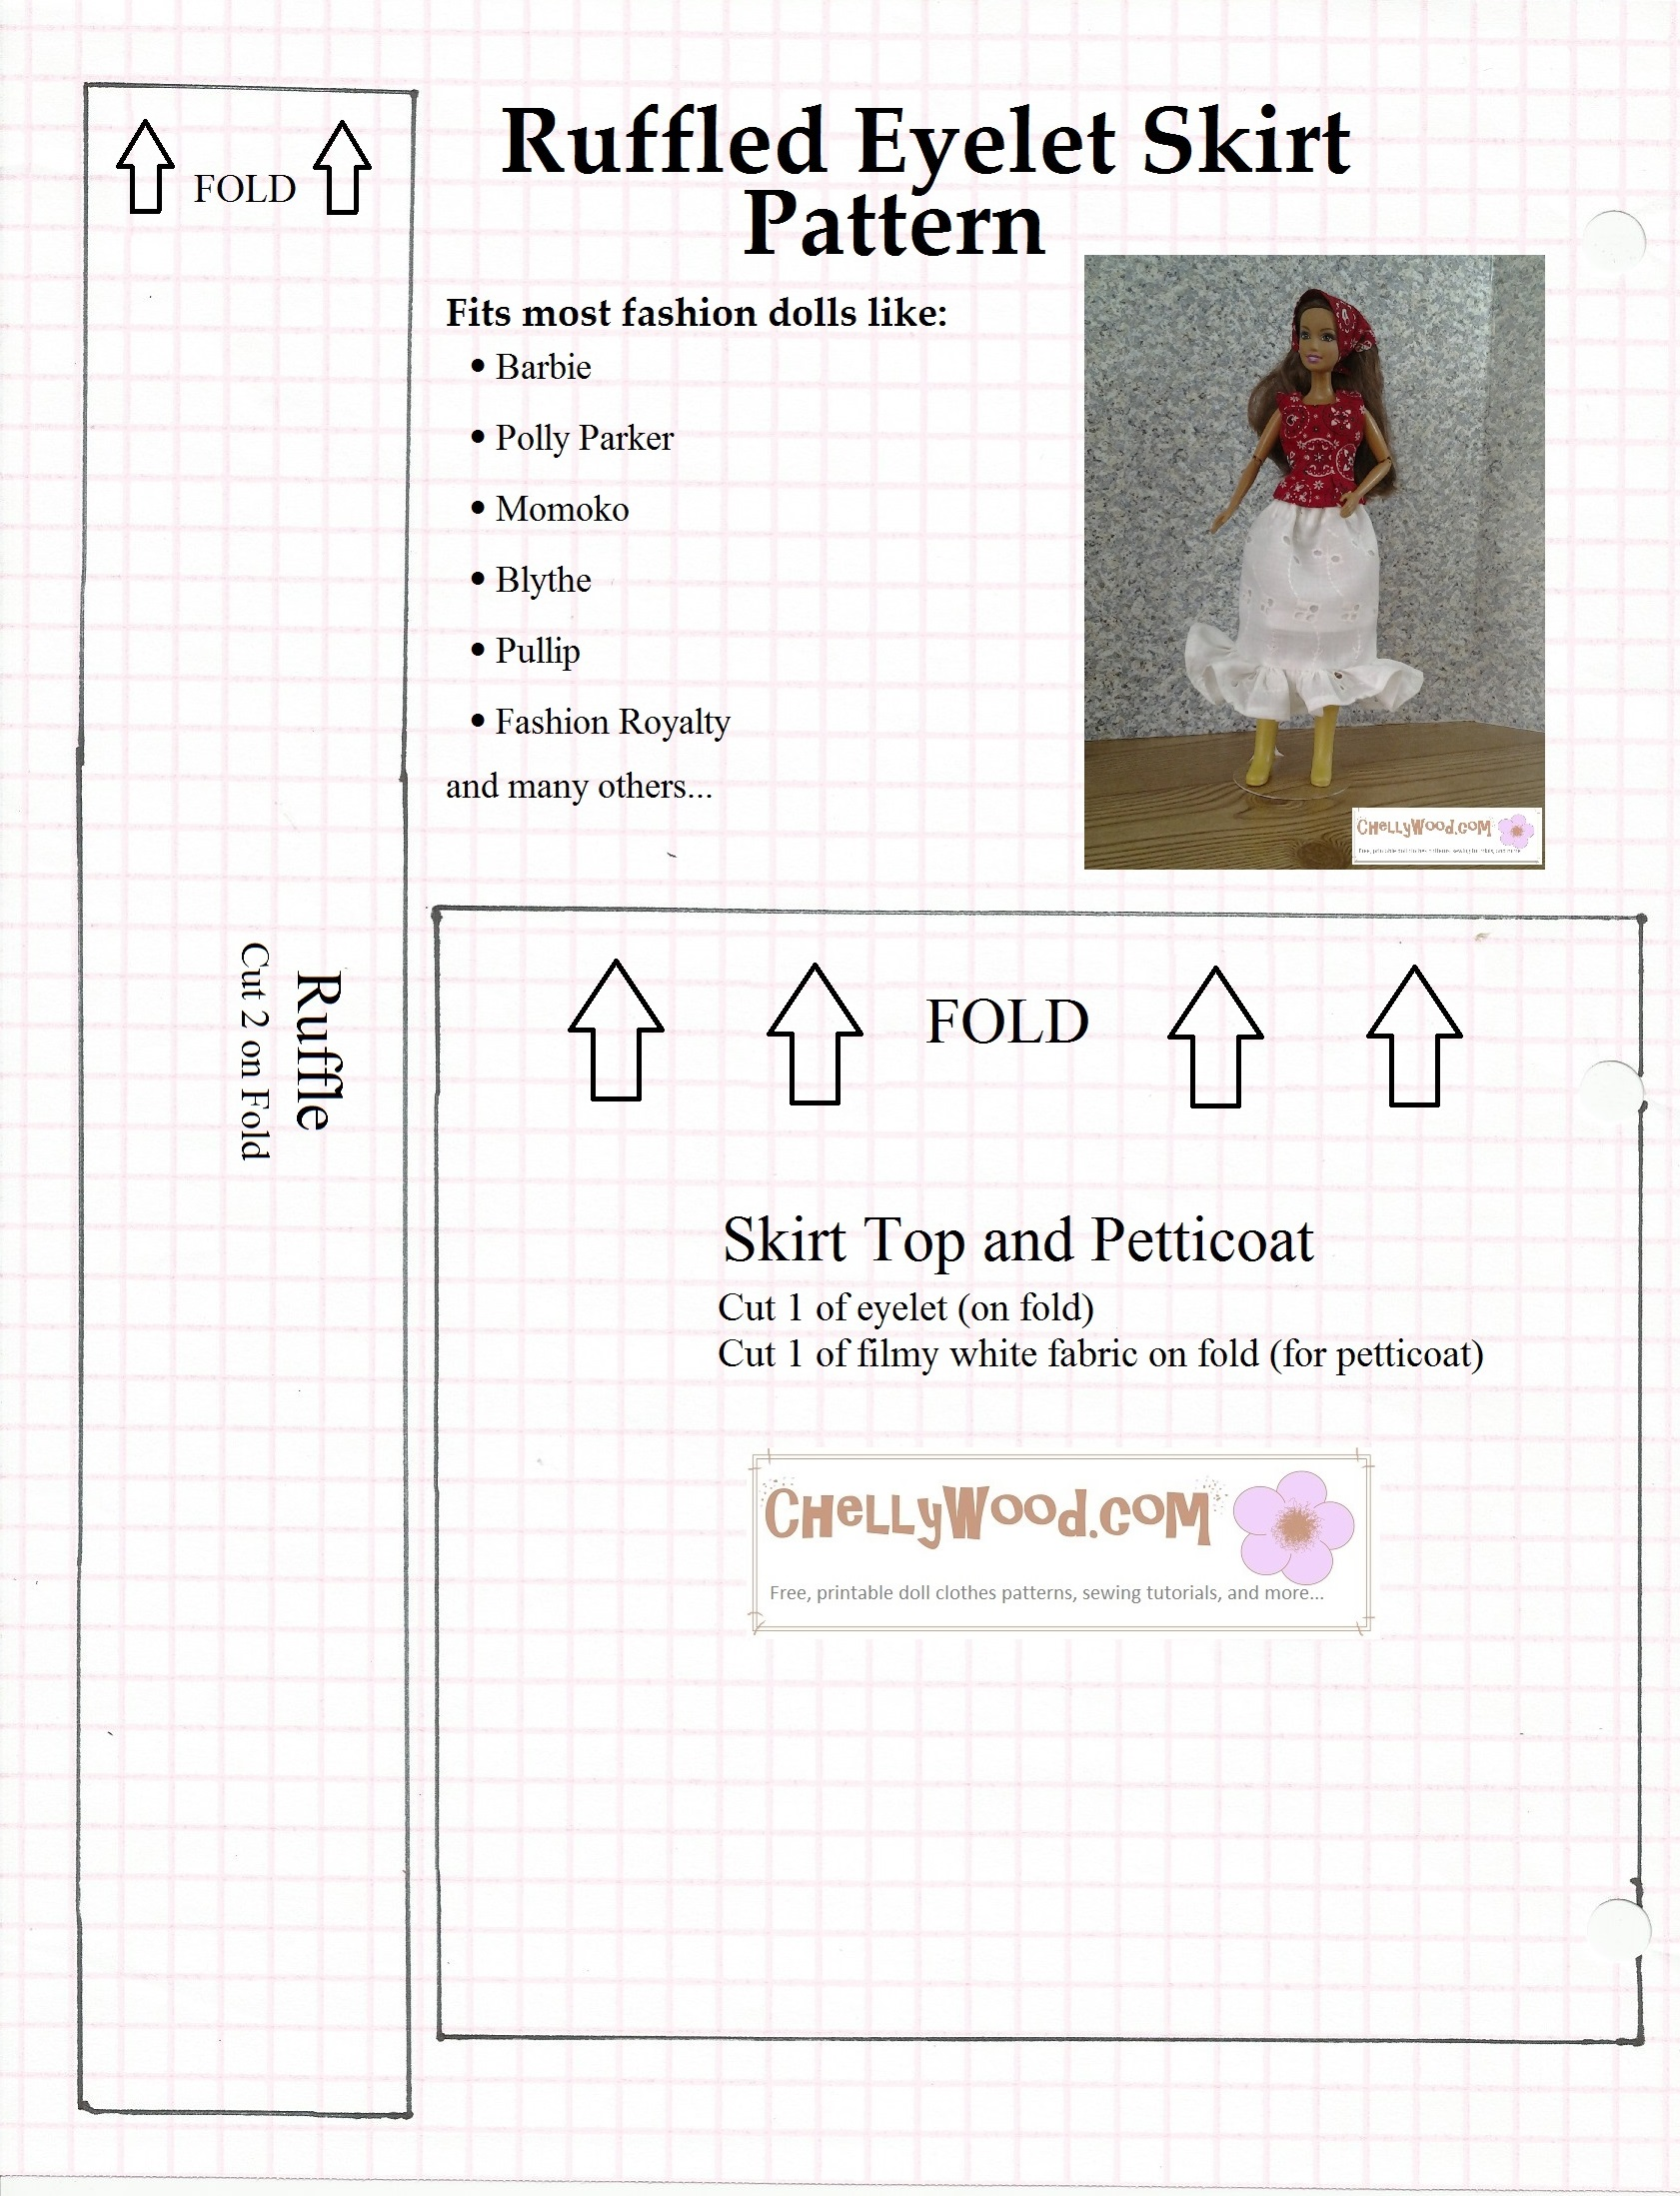 photo about Barbie Doll Clothes Patterns Free Printable identify Barbie Practices No cost Doll Apparel Behavior